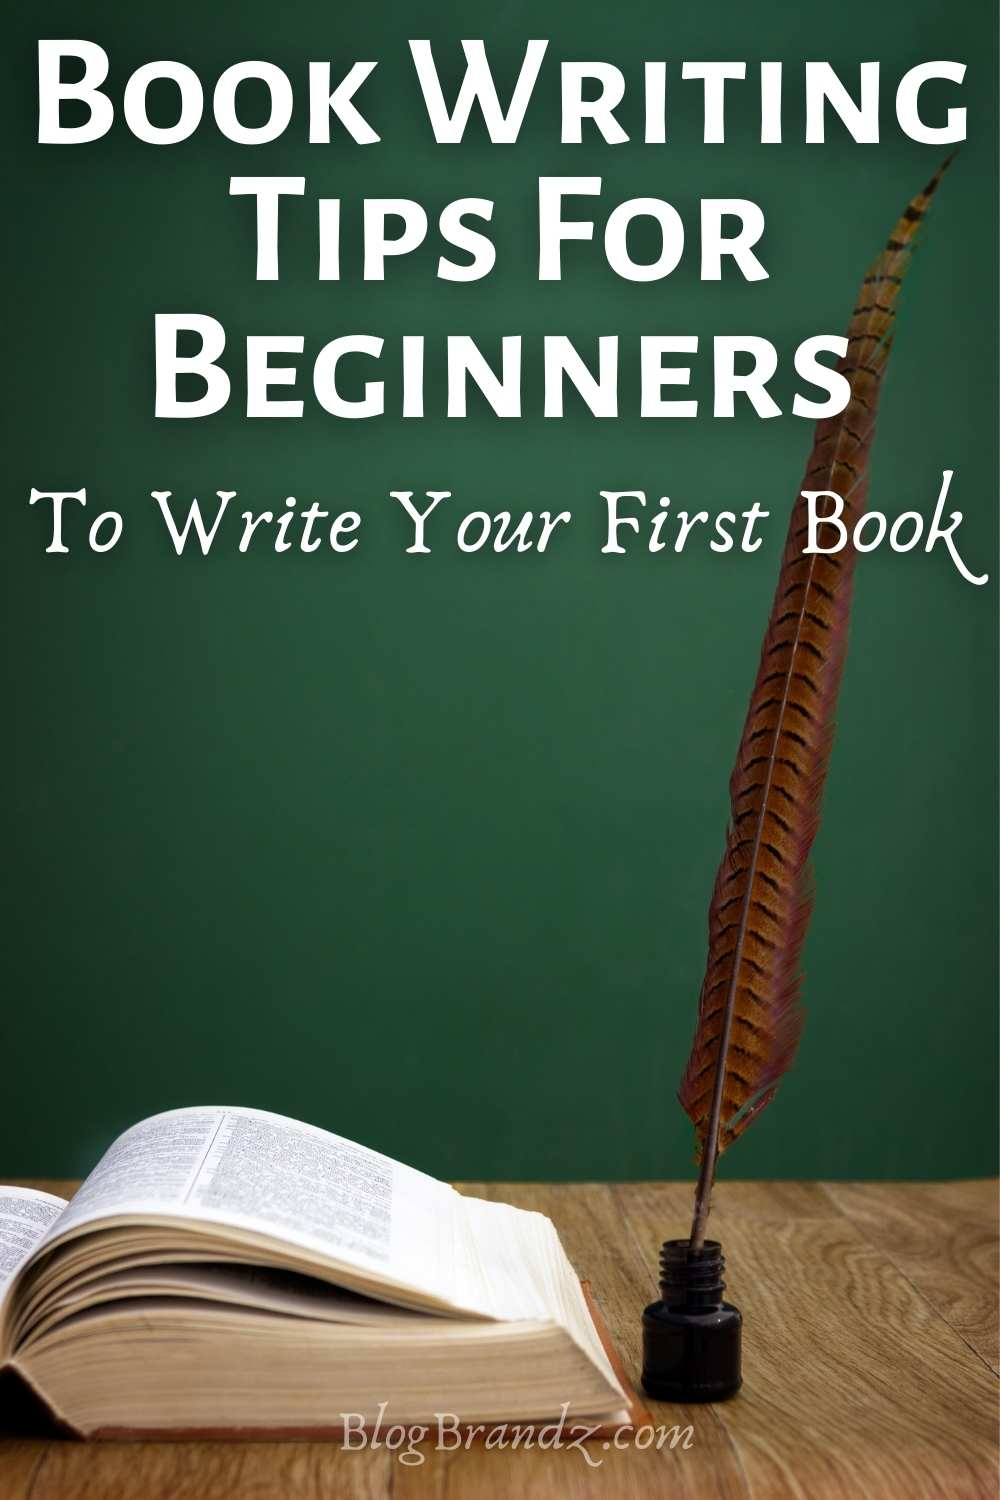 Book Writing Tips For Beginners